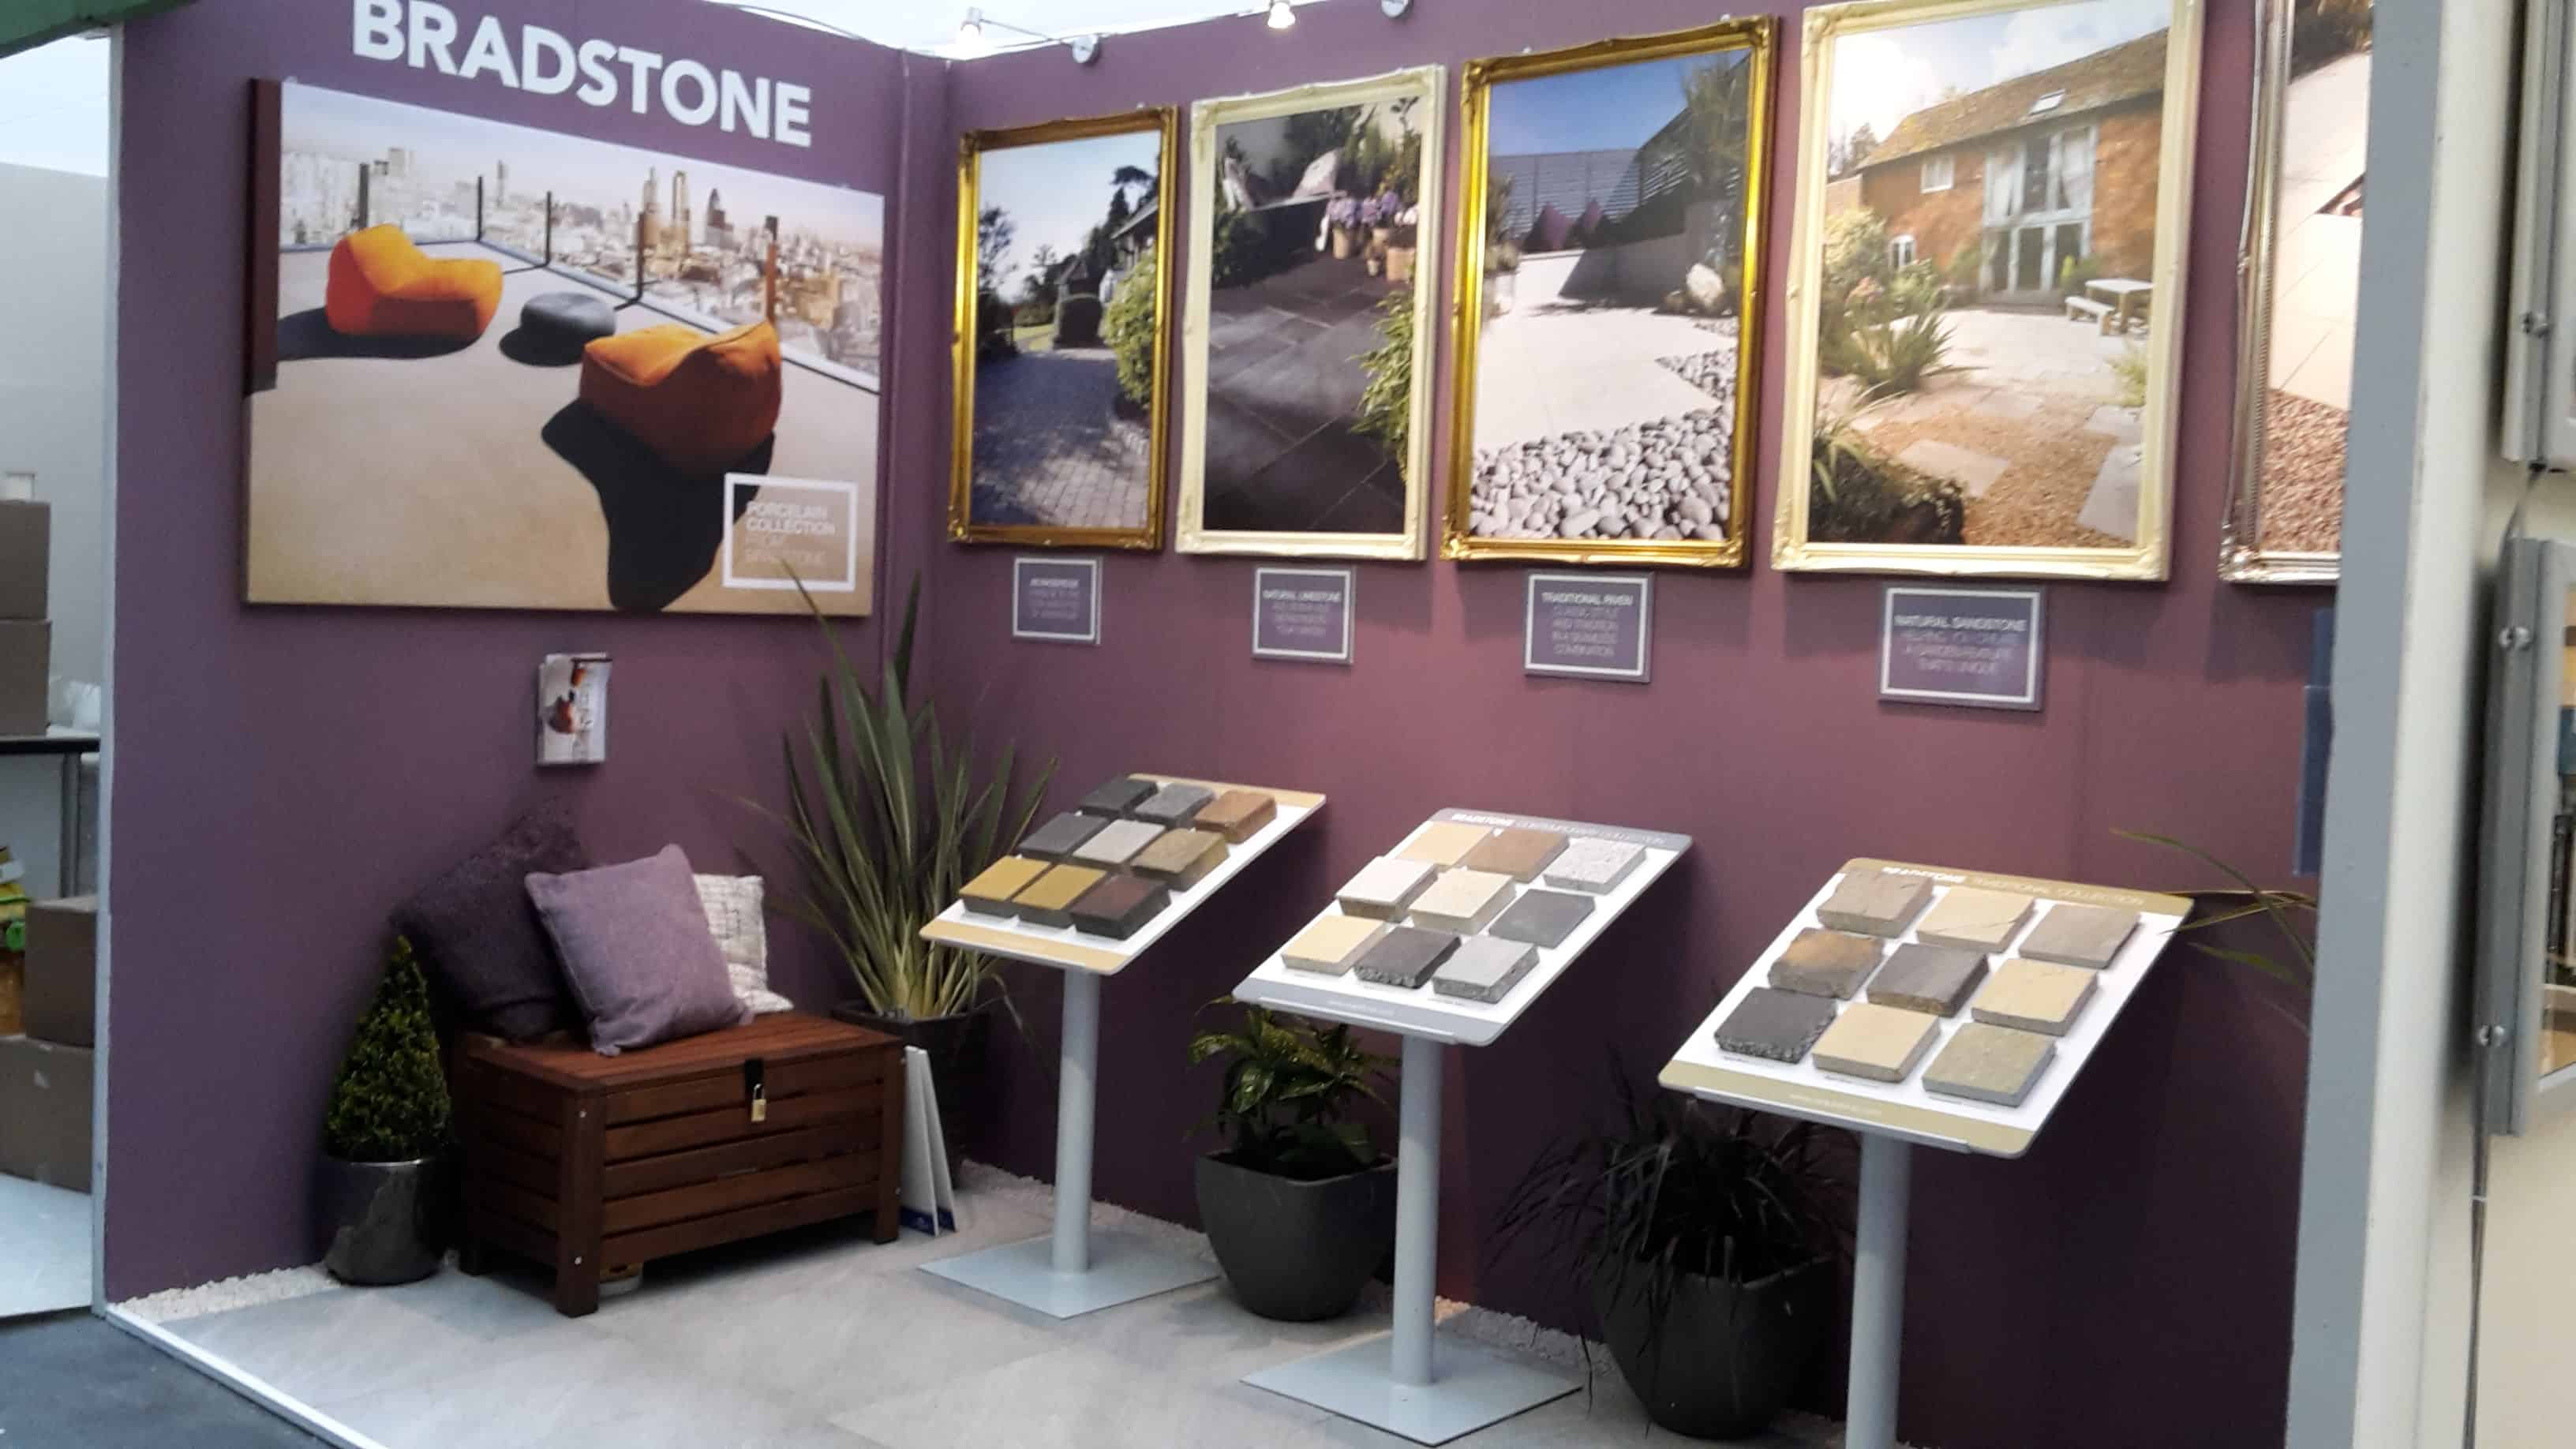 bradstone showcases 2015 collection at ideal home show